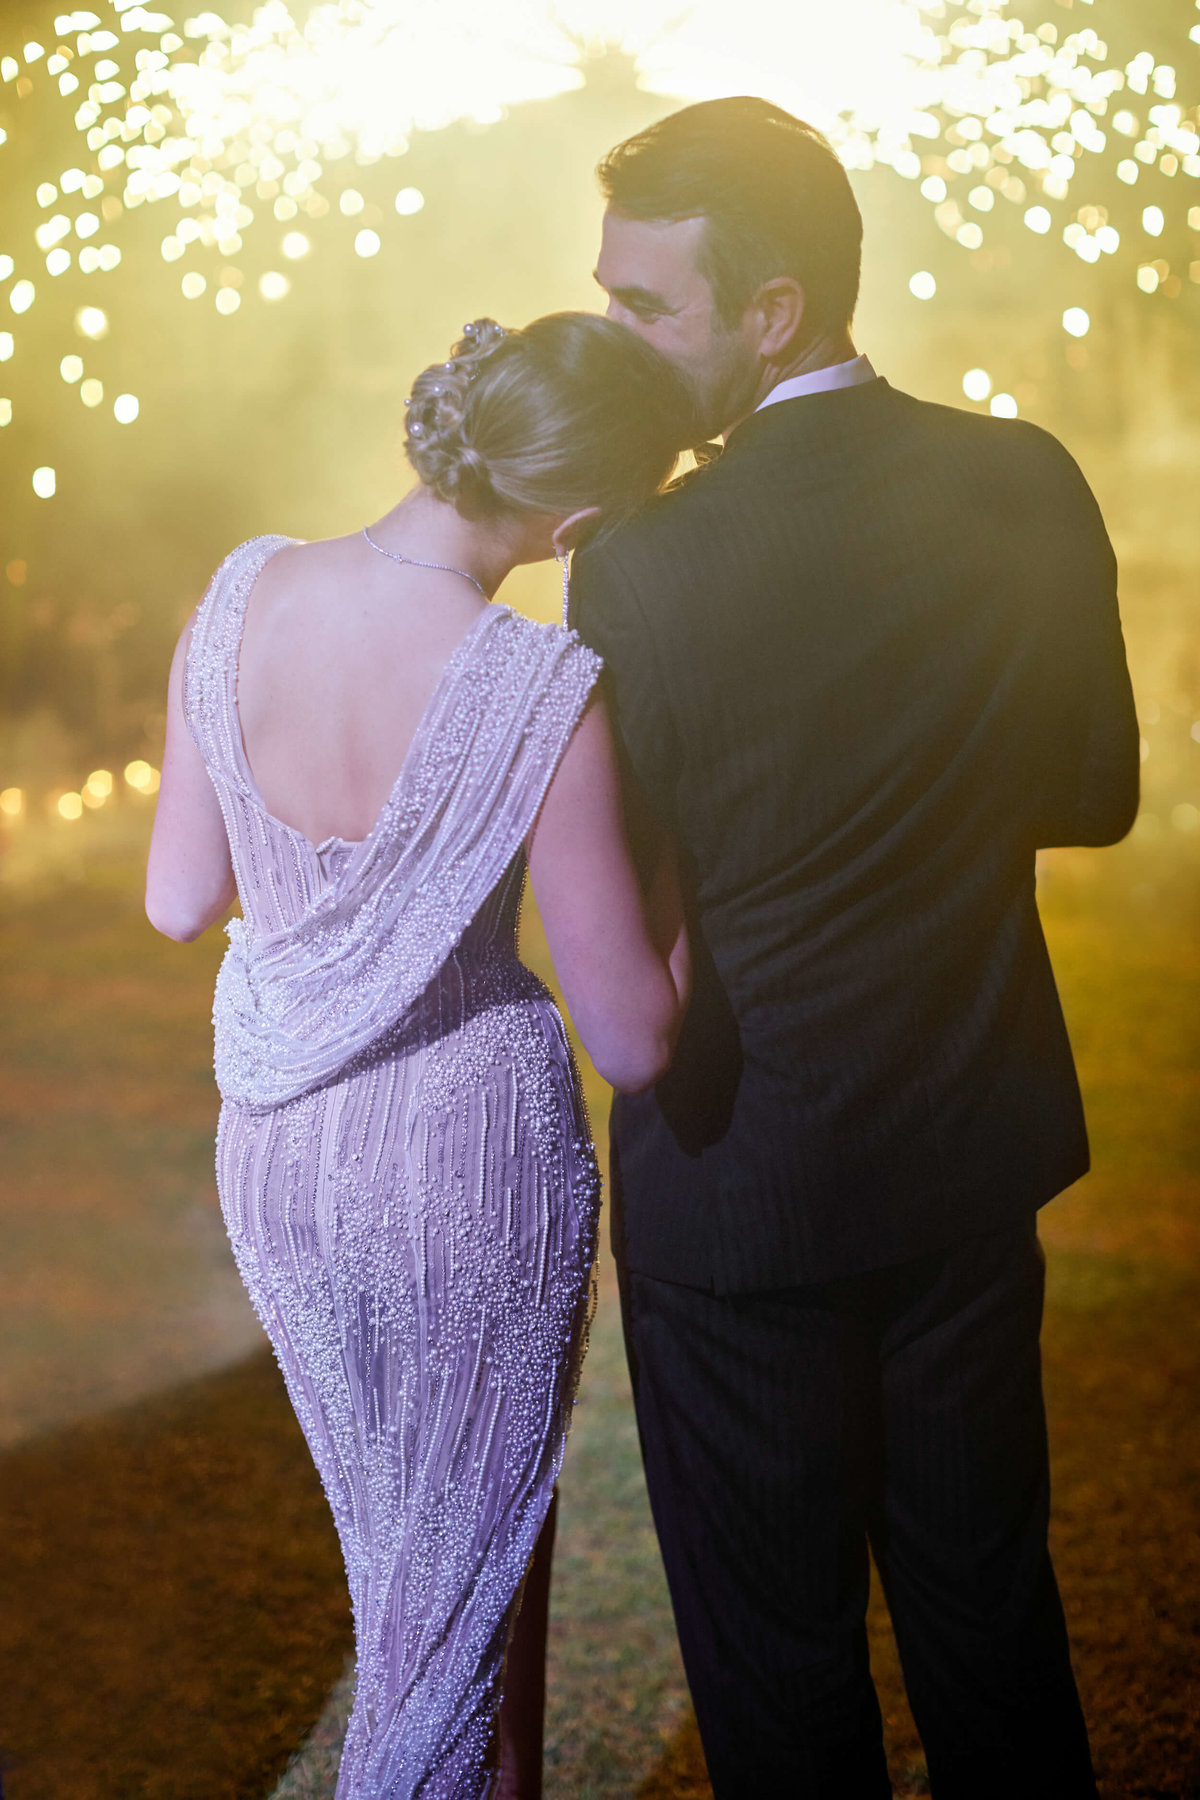 32-KTMerry-weddings-kate-hudson-justin-verlander-fireworks